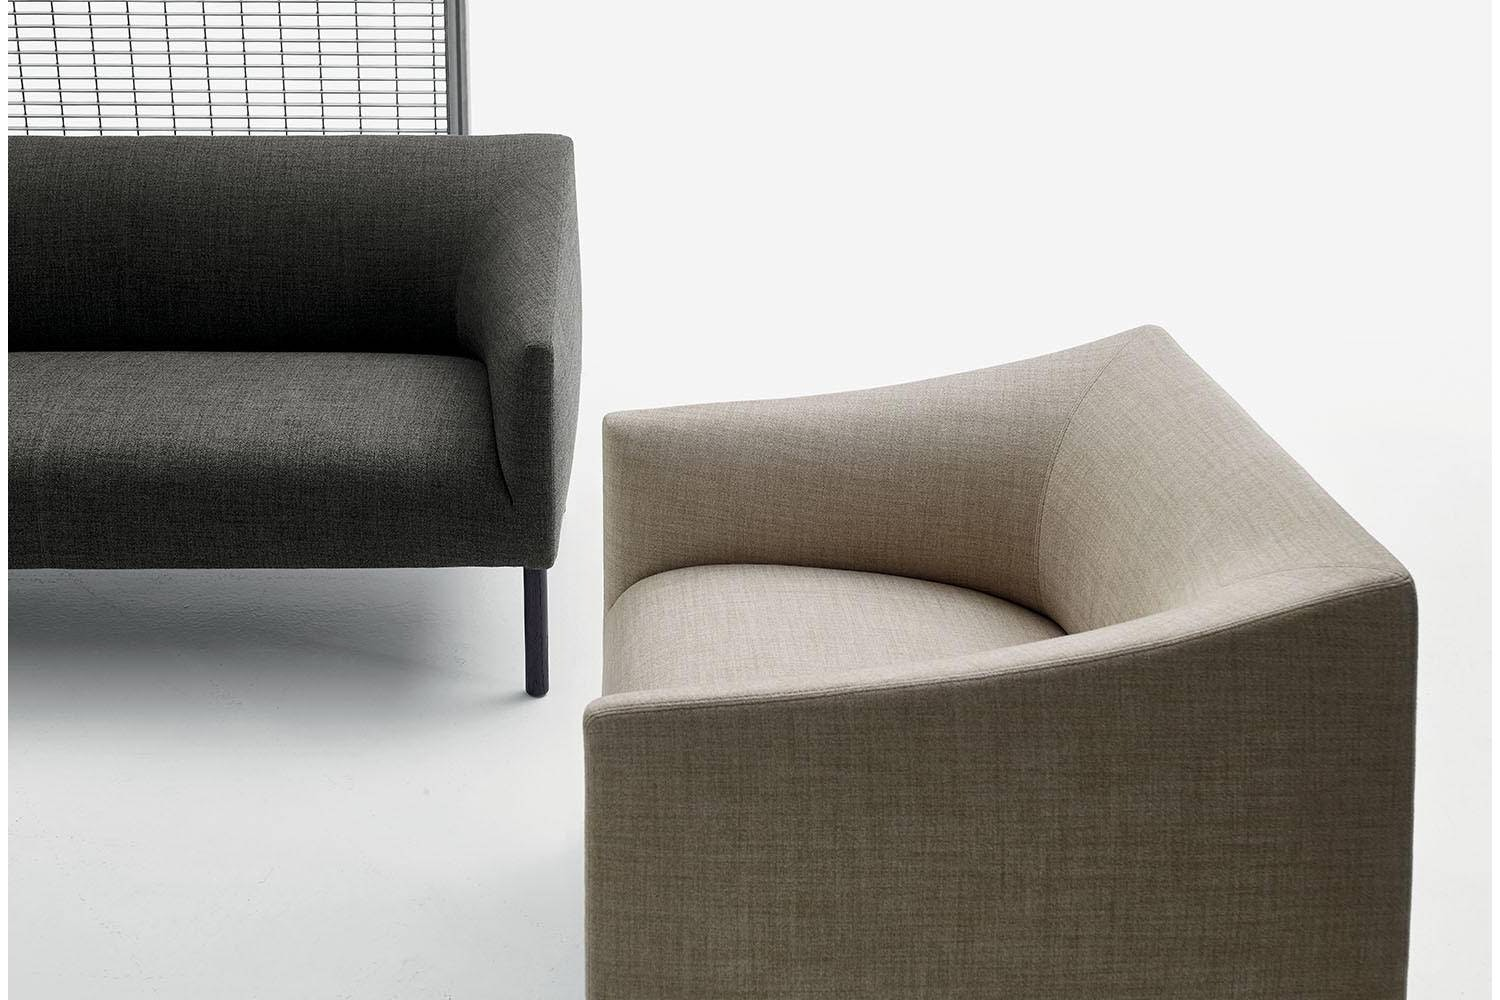 Bankside Armchair by Jasper Morrison for B&B Italia Project